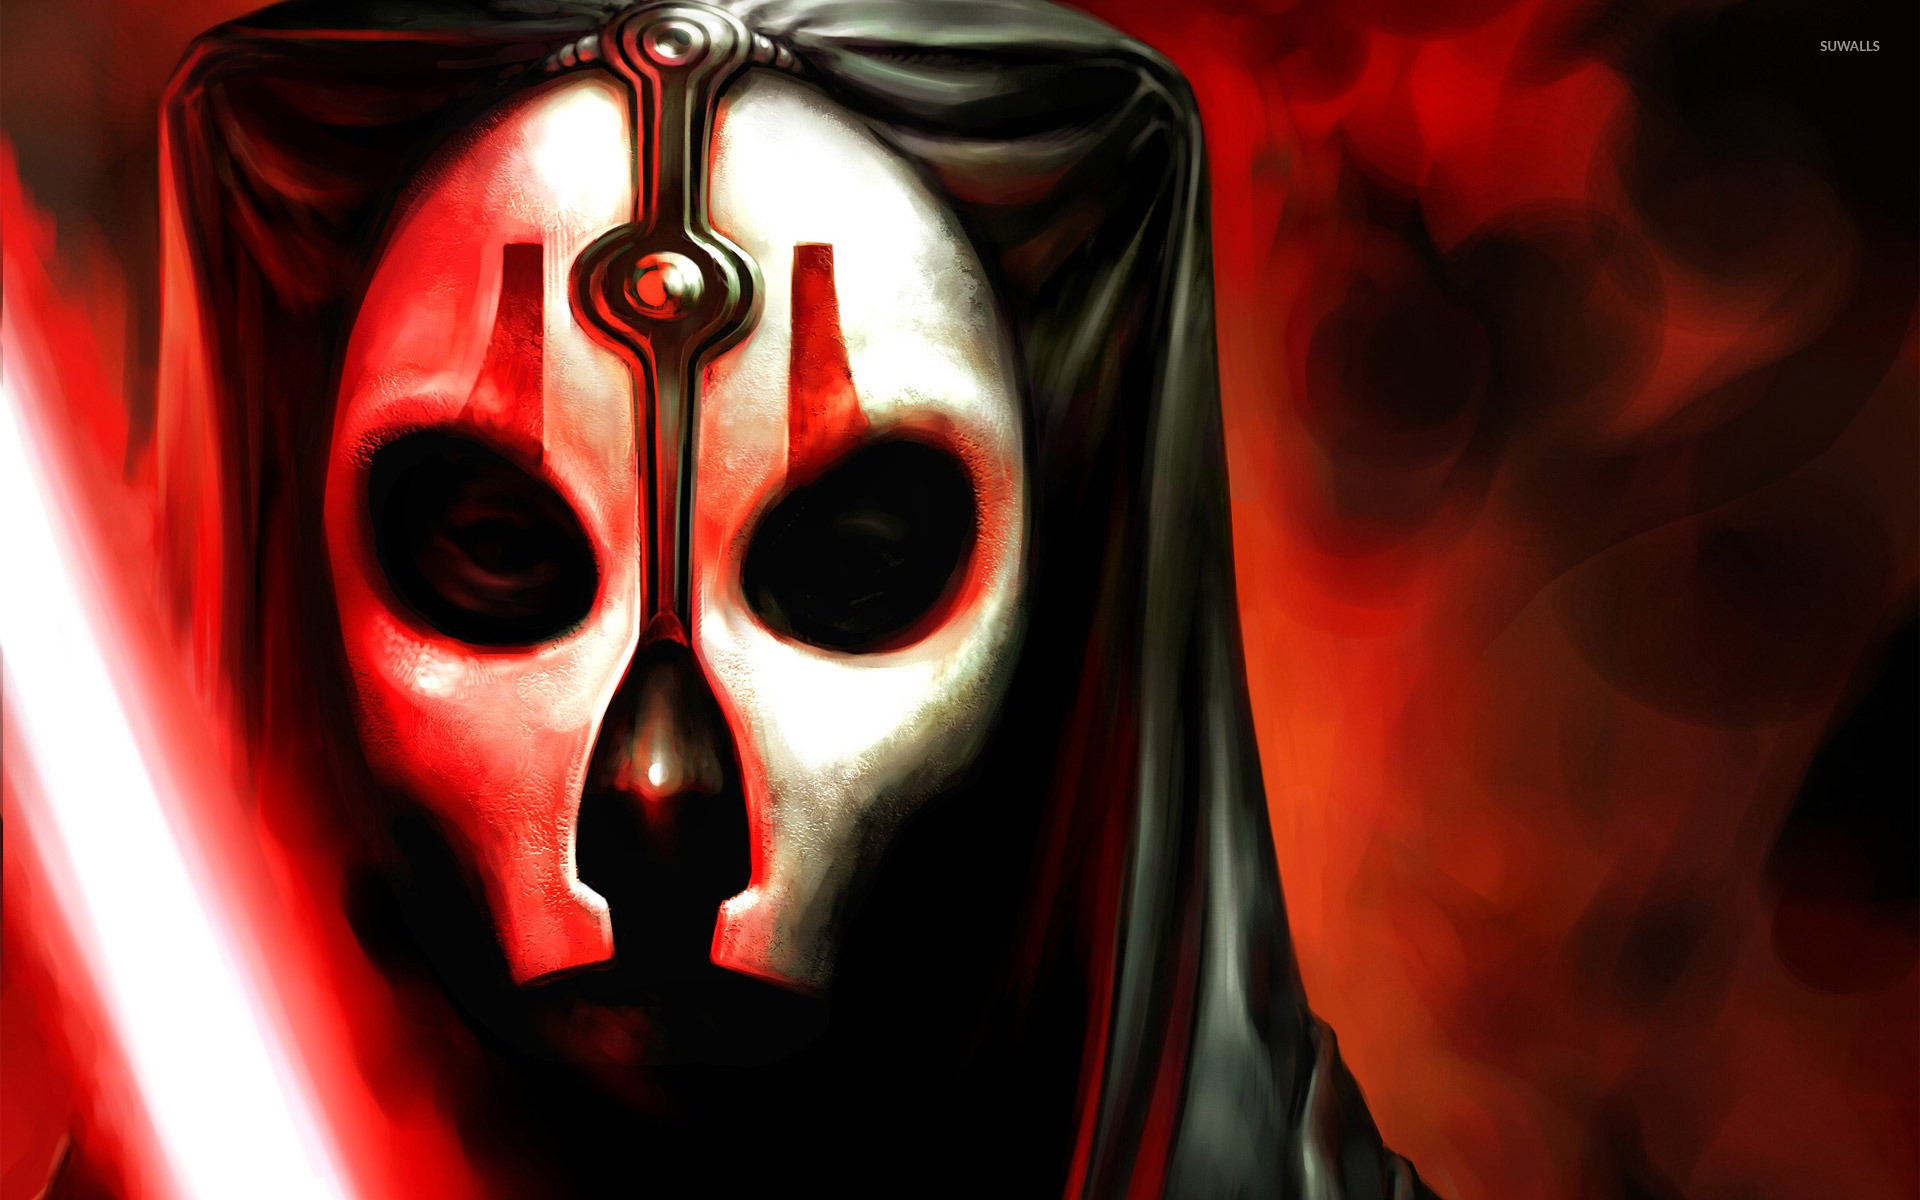 Star Wars Knights Of The Old Republic 2 The Sith Lords Wallpaper Game Wallpapers 16289